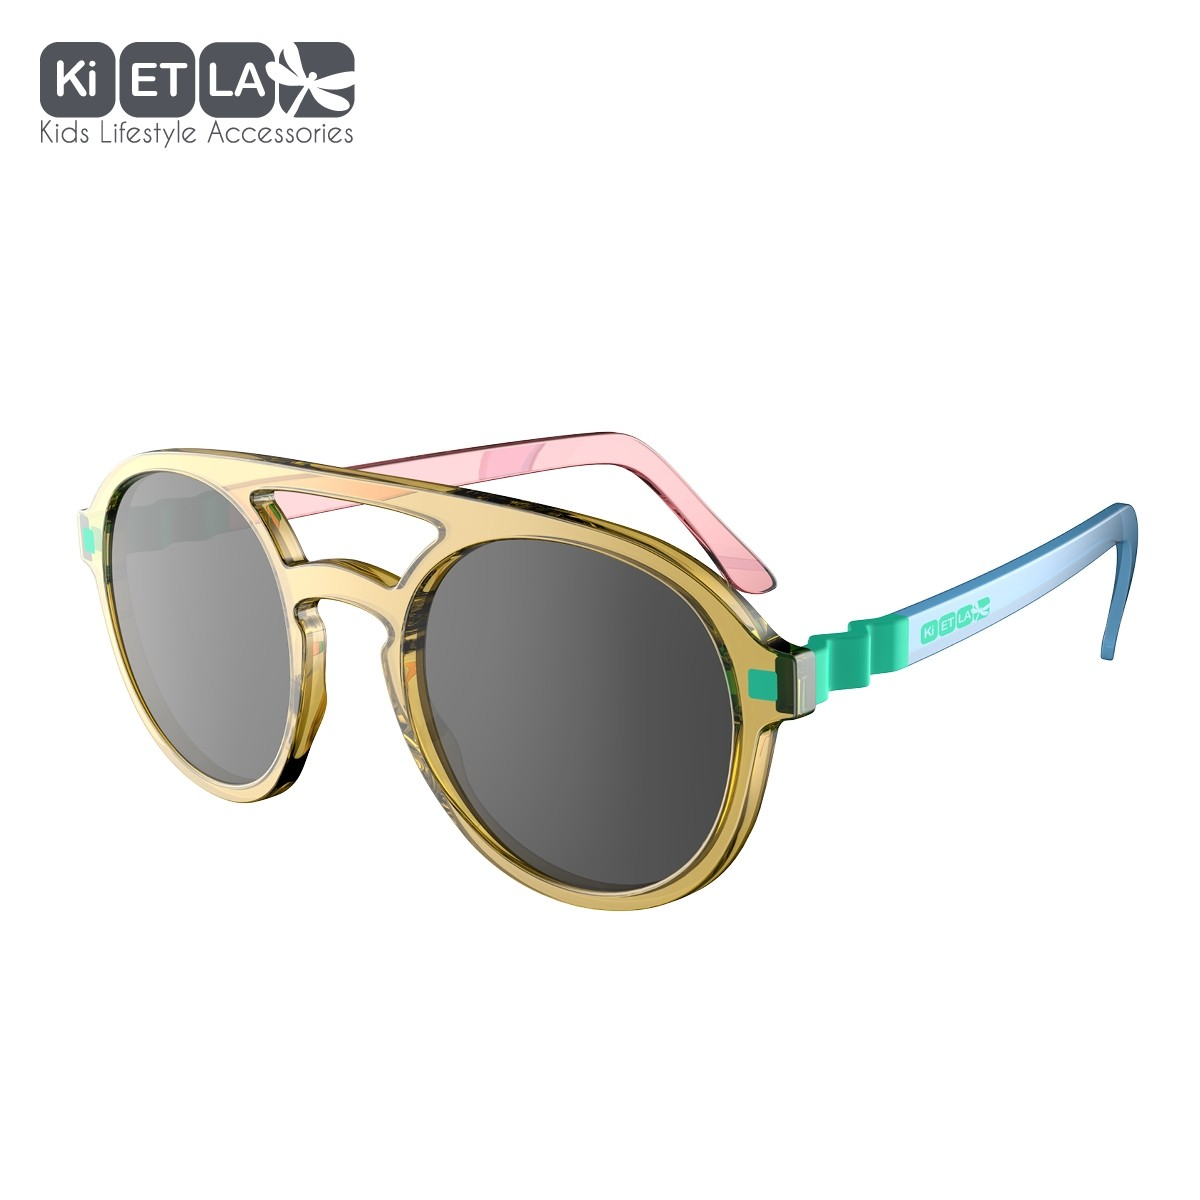 Ki ET LA Sunglasses for kids